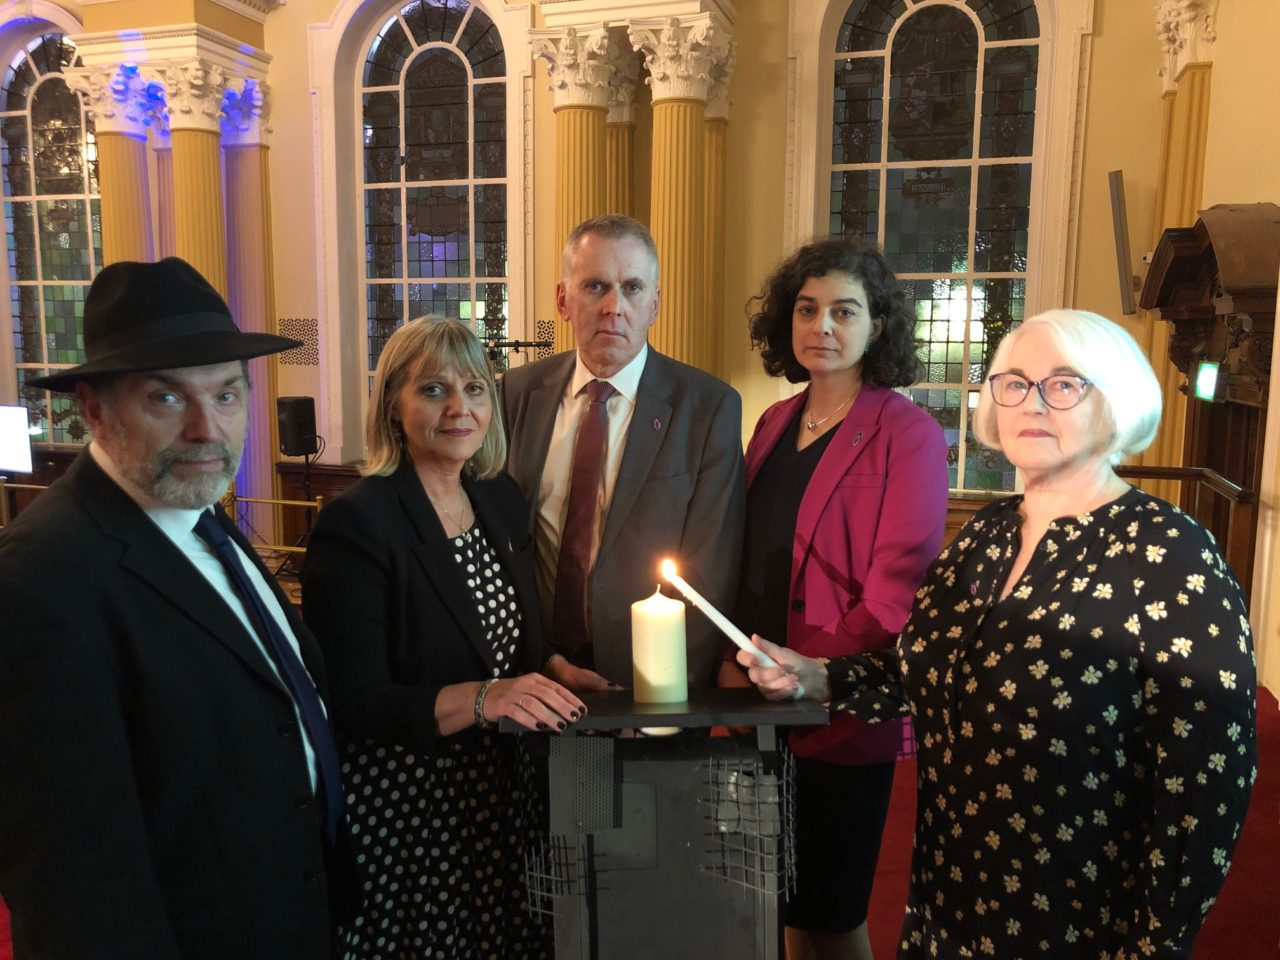 HMD 2019 IN NORTHERN IRELAND